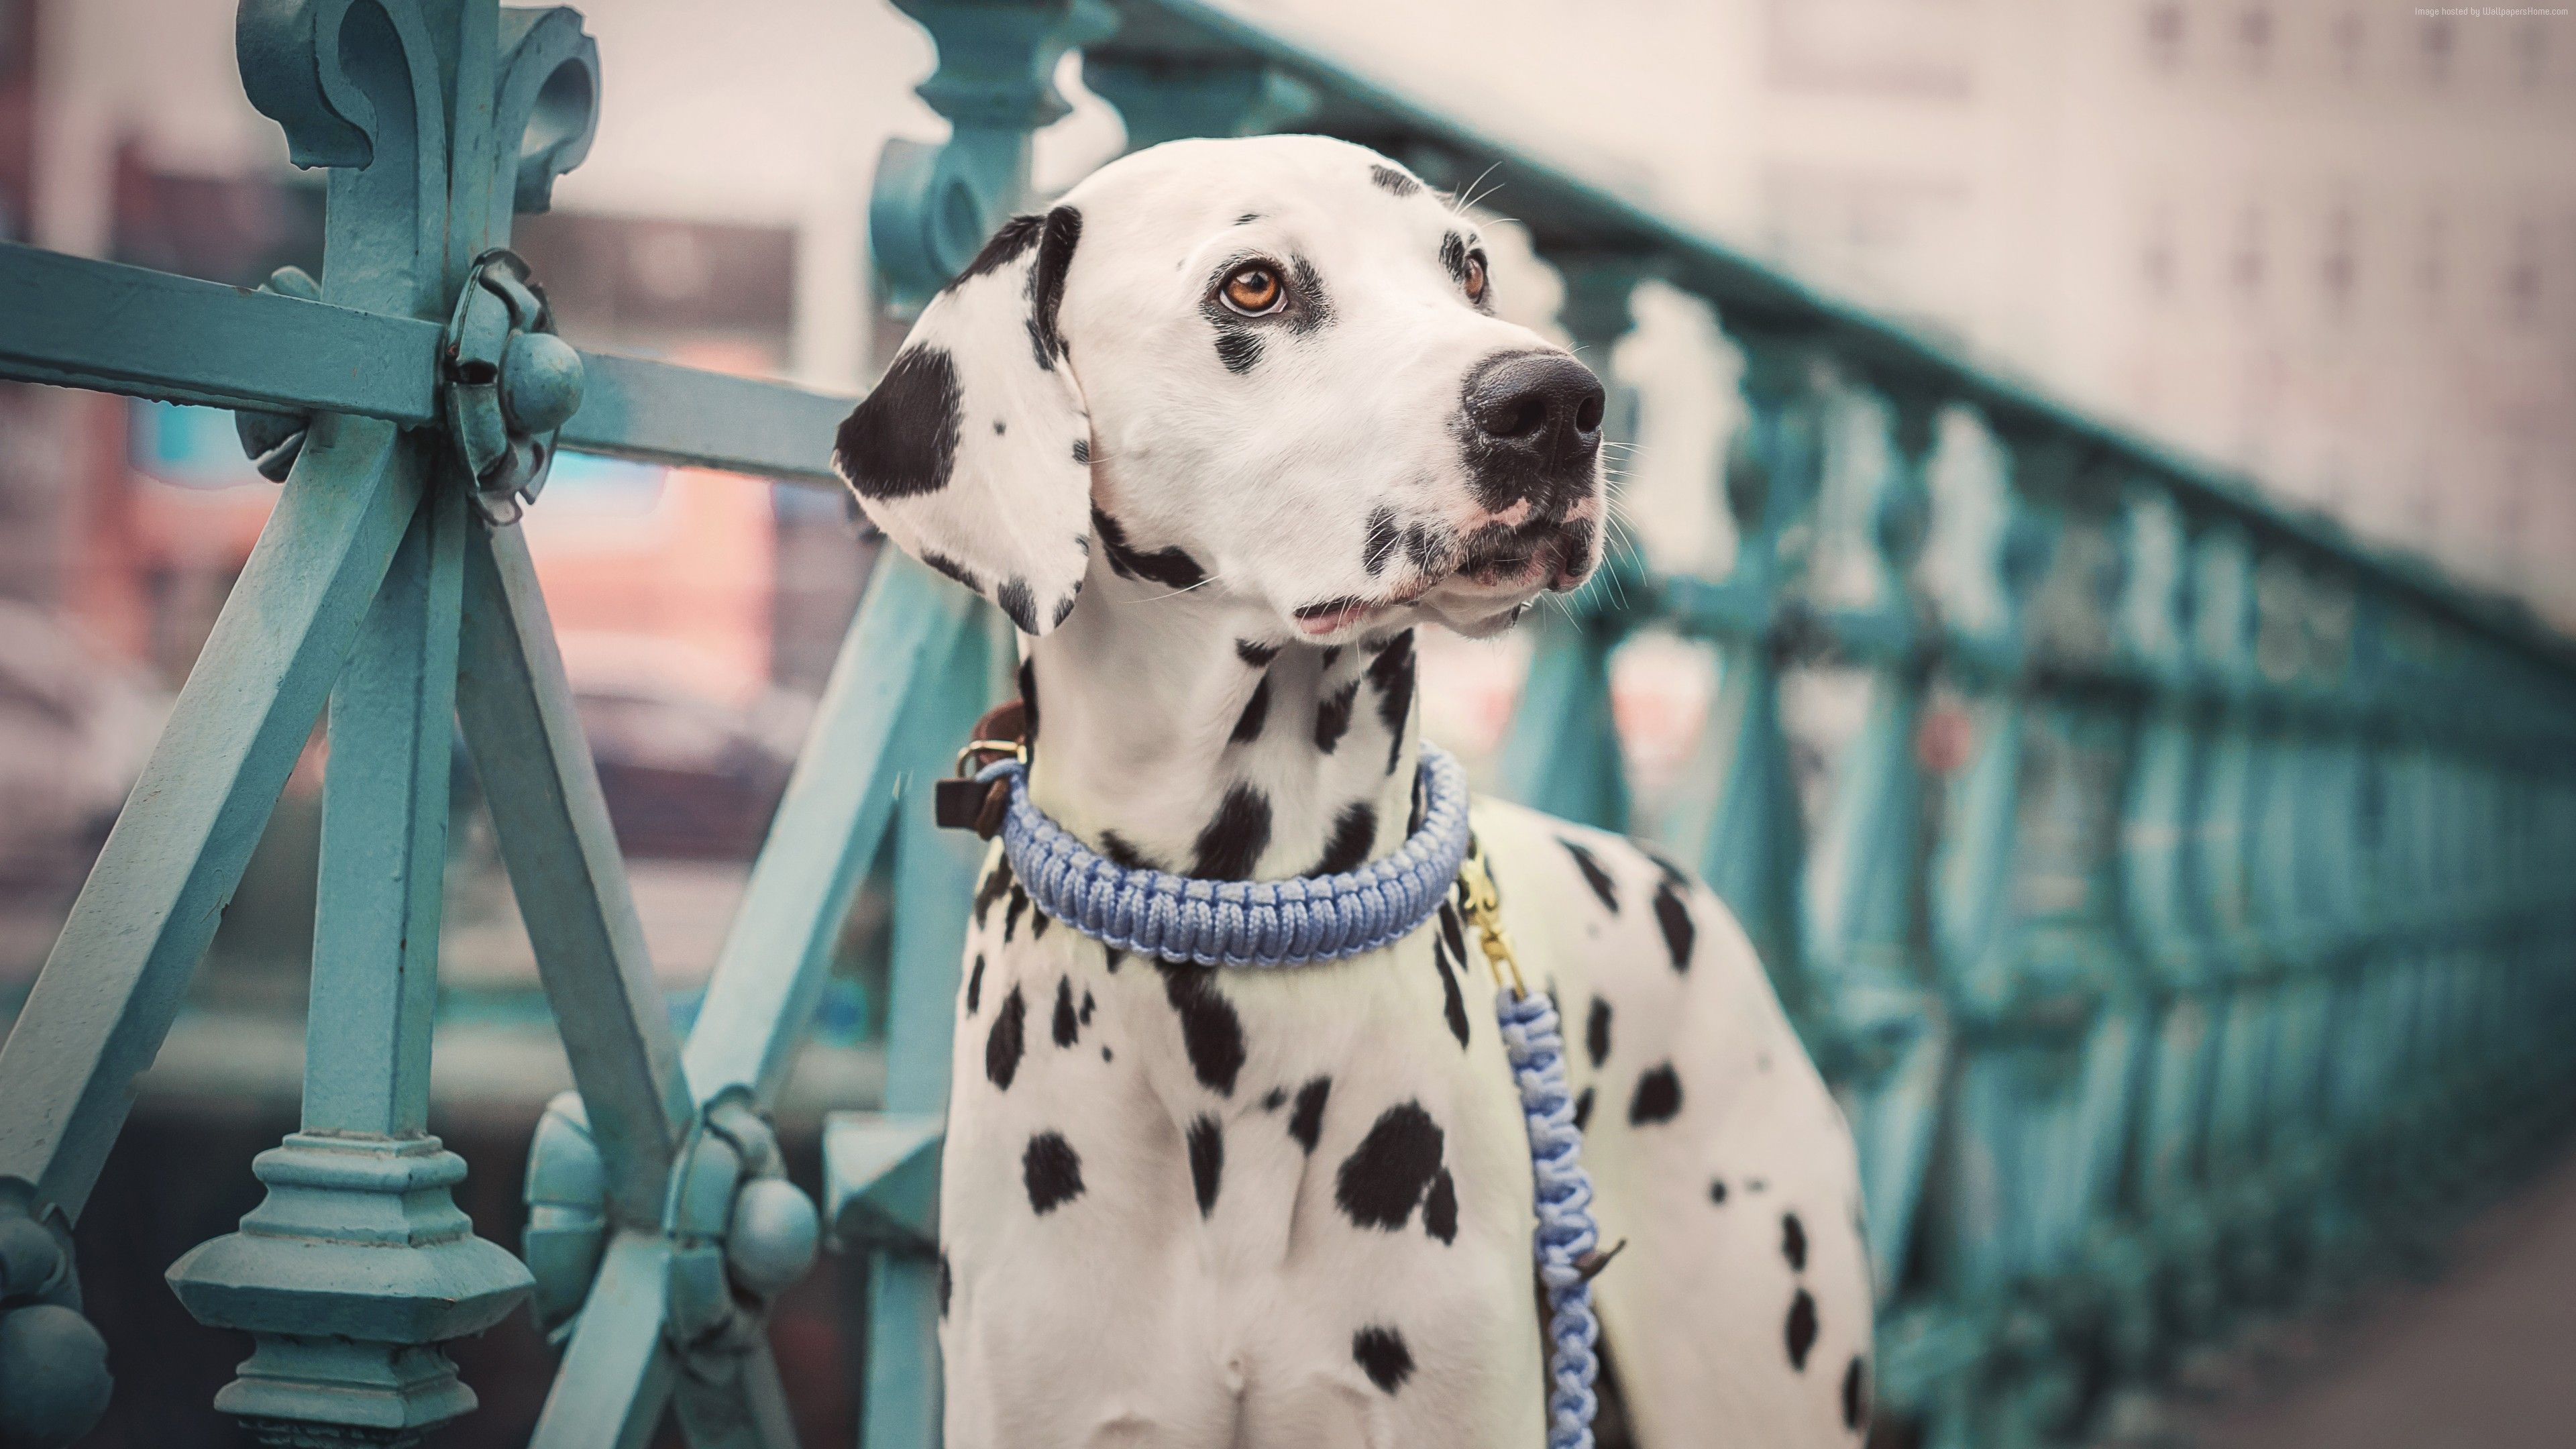 Wallpaper Dalmatian, dog, cute animals, 5K, Animals